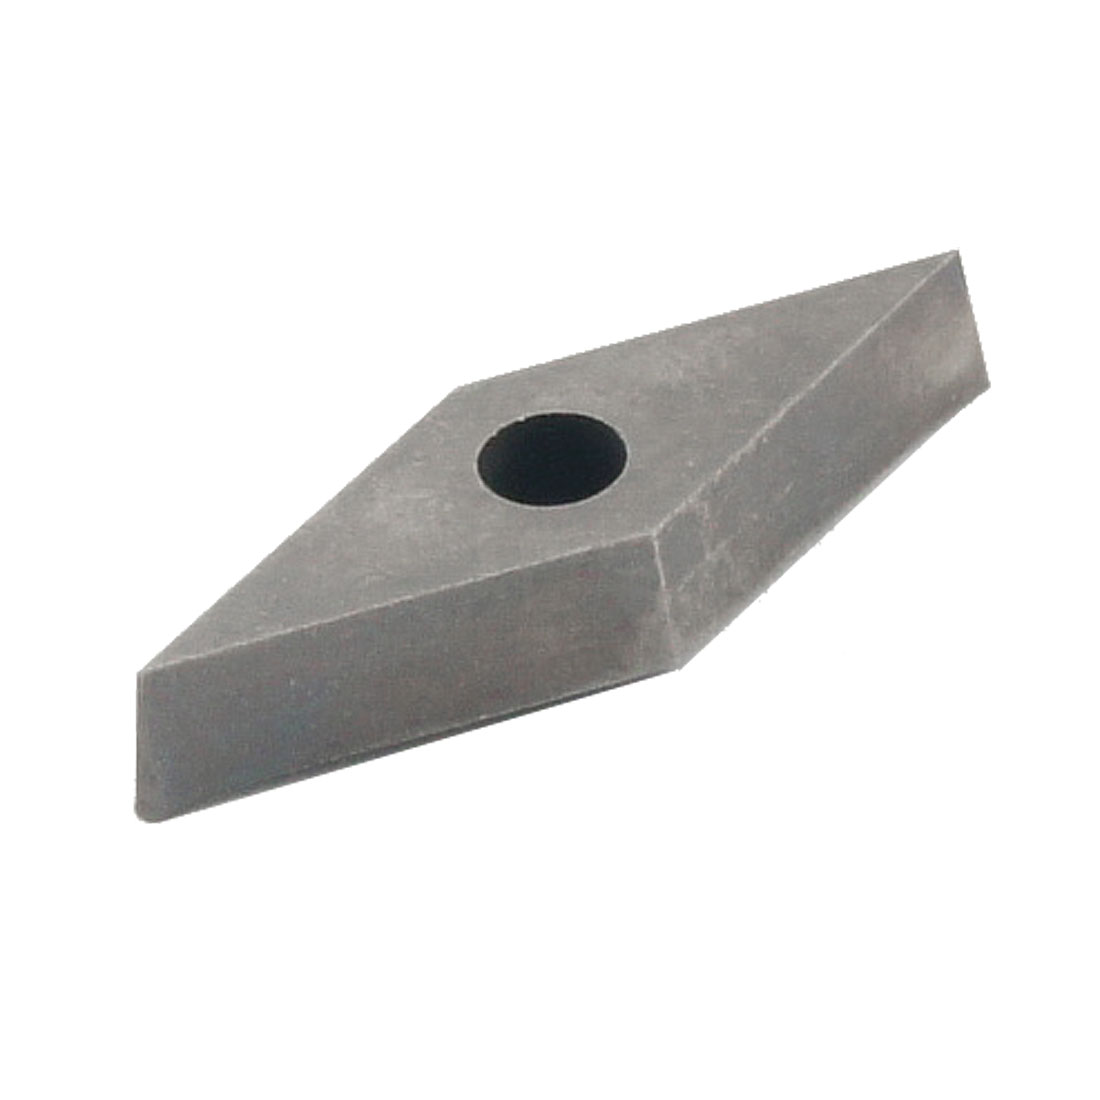 "VCGT110304-AL FK10 3/25"" Thick 4 Point Carbide Insert for Boring Bar"